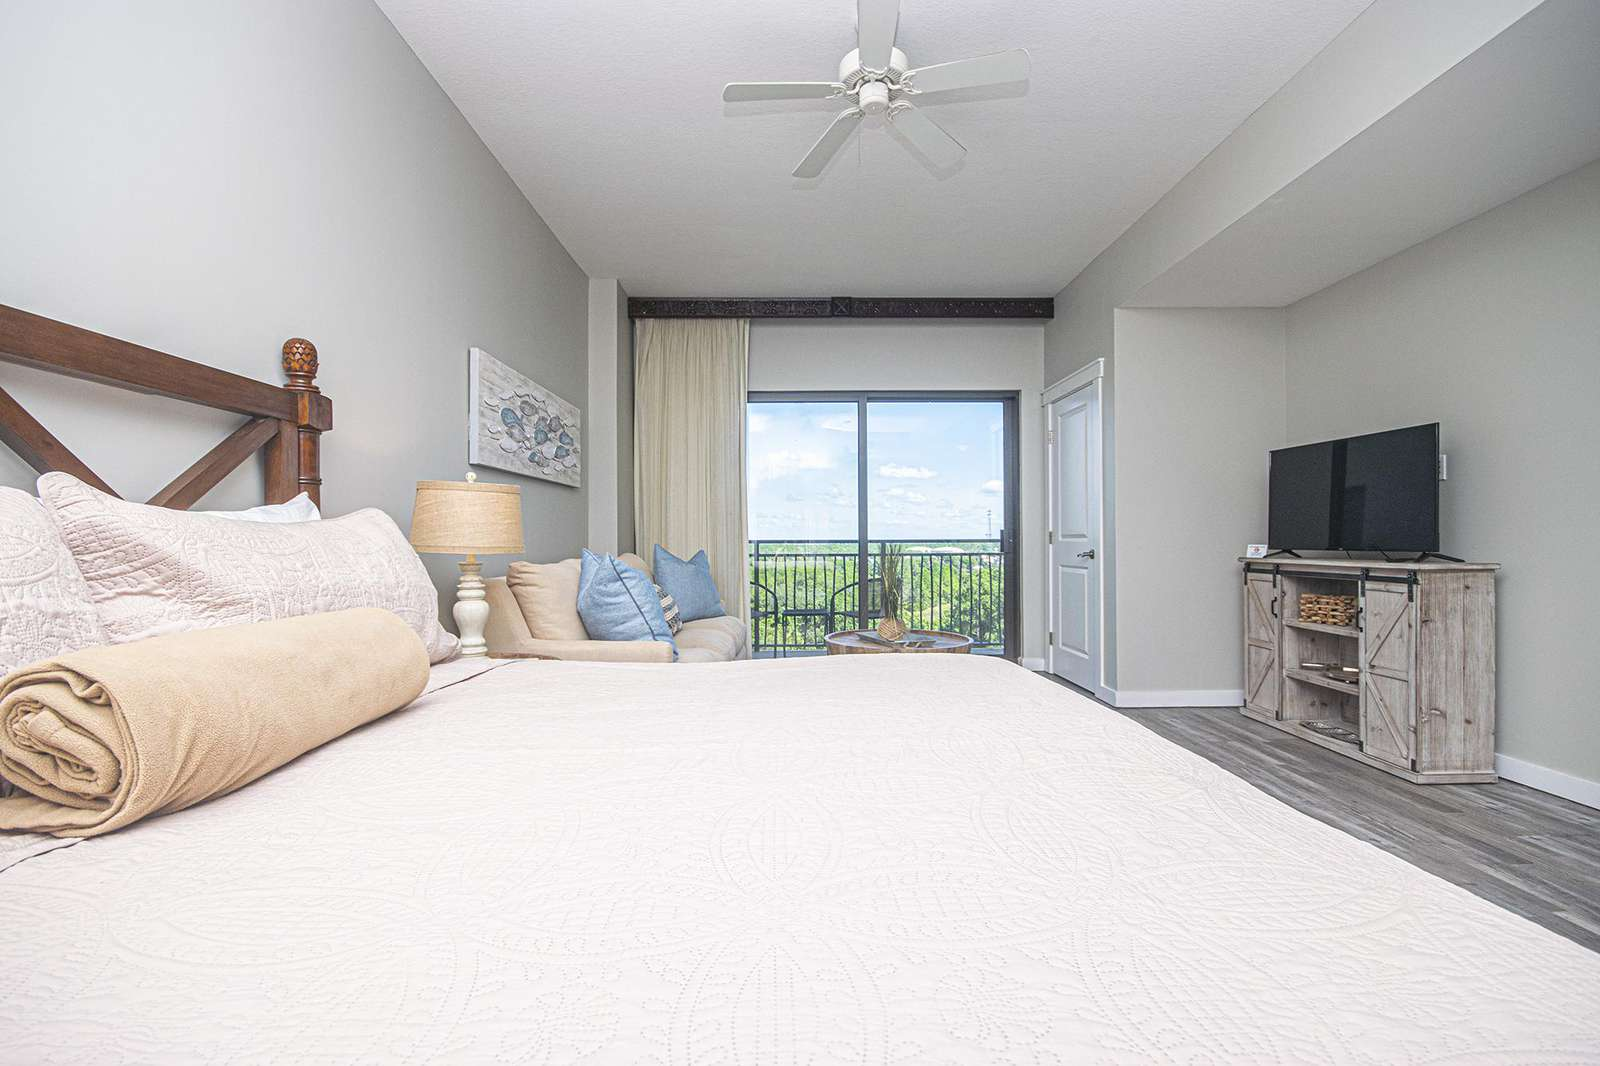 Relaxing views right from your bed!